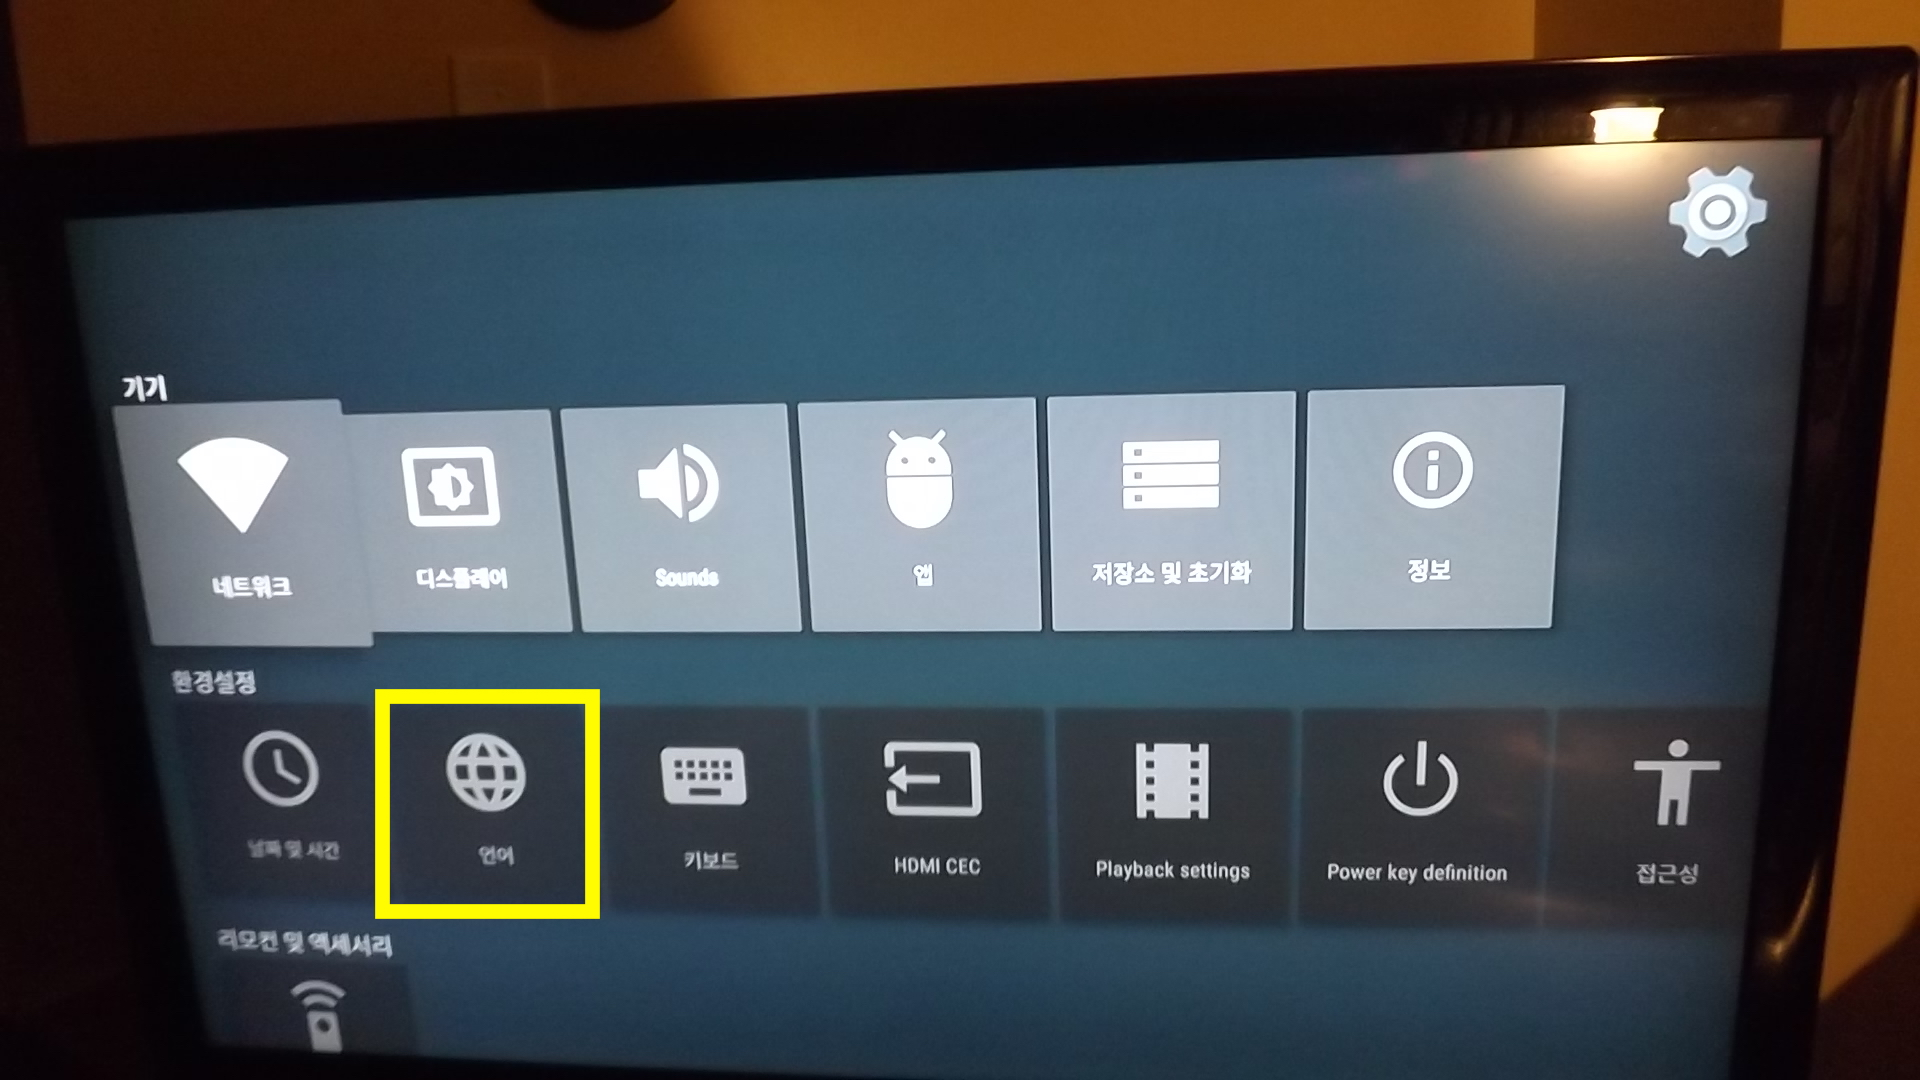 Changing language from Chinese to English in Android TV Box